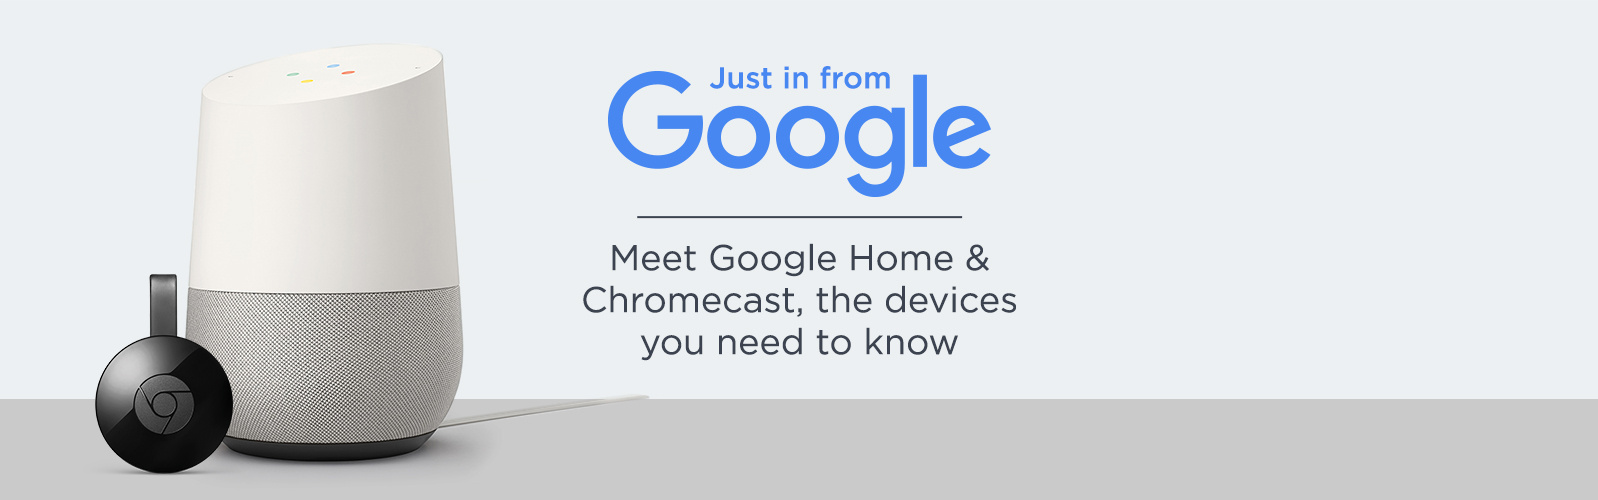 Just in from Google - Meet Google Home & Chromecast, the devices you need to know